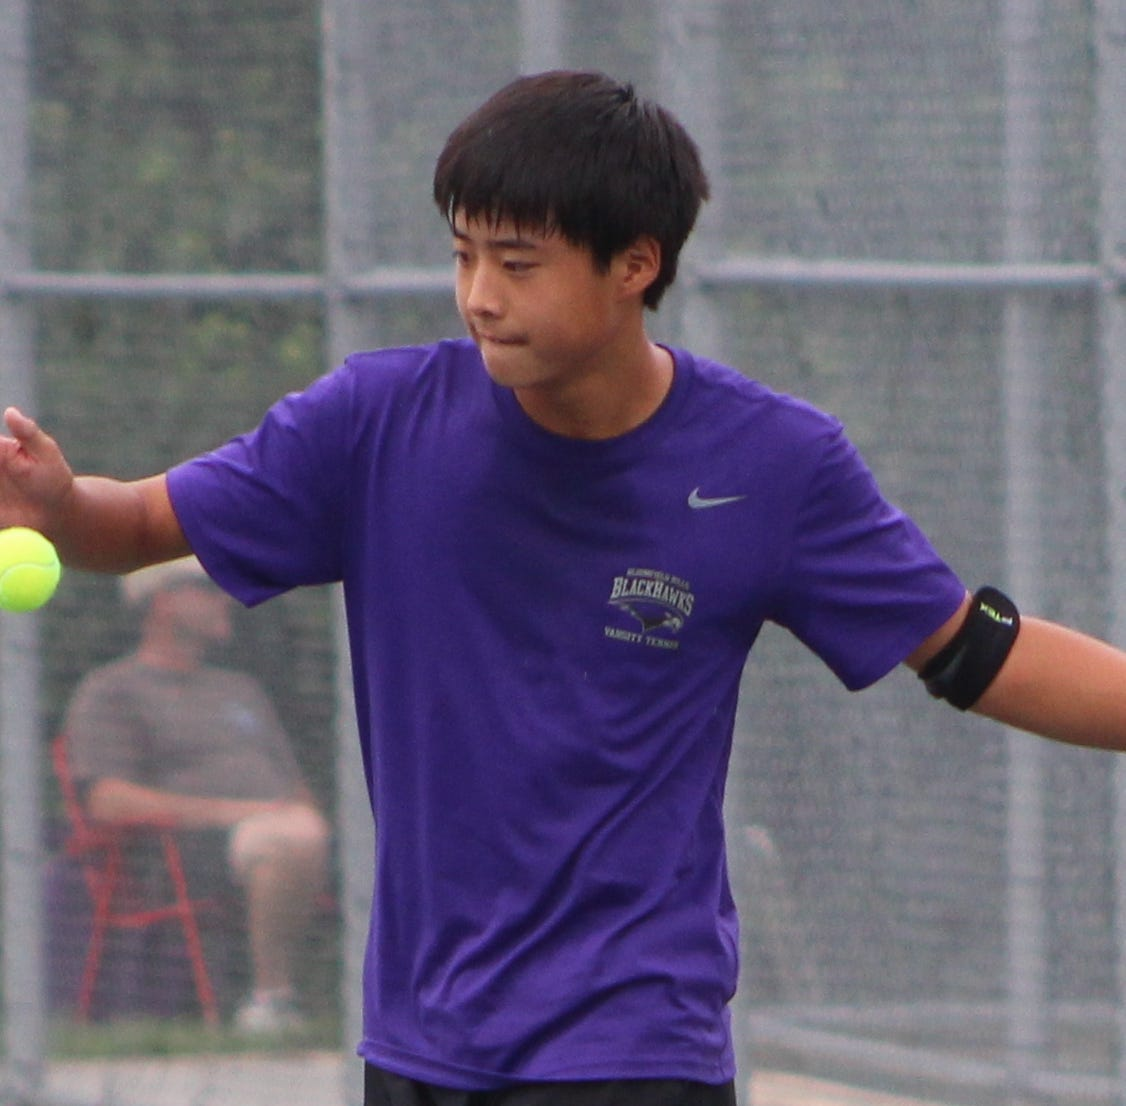 Area boys tennis teams have stellar regional showings to qualify for states